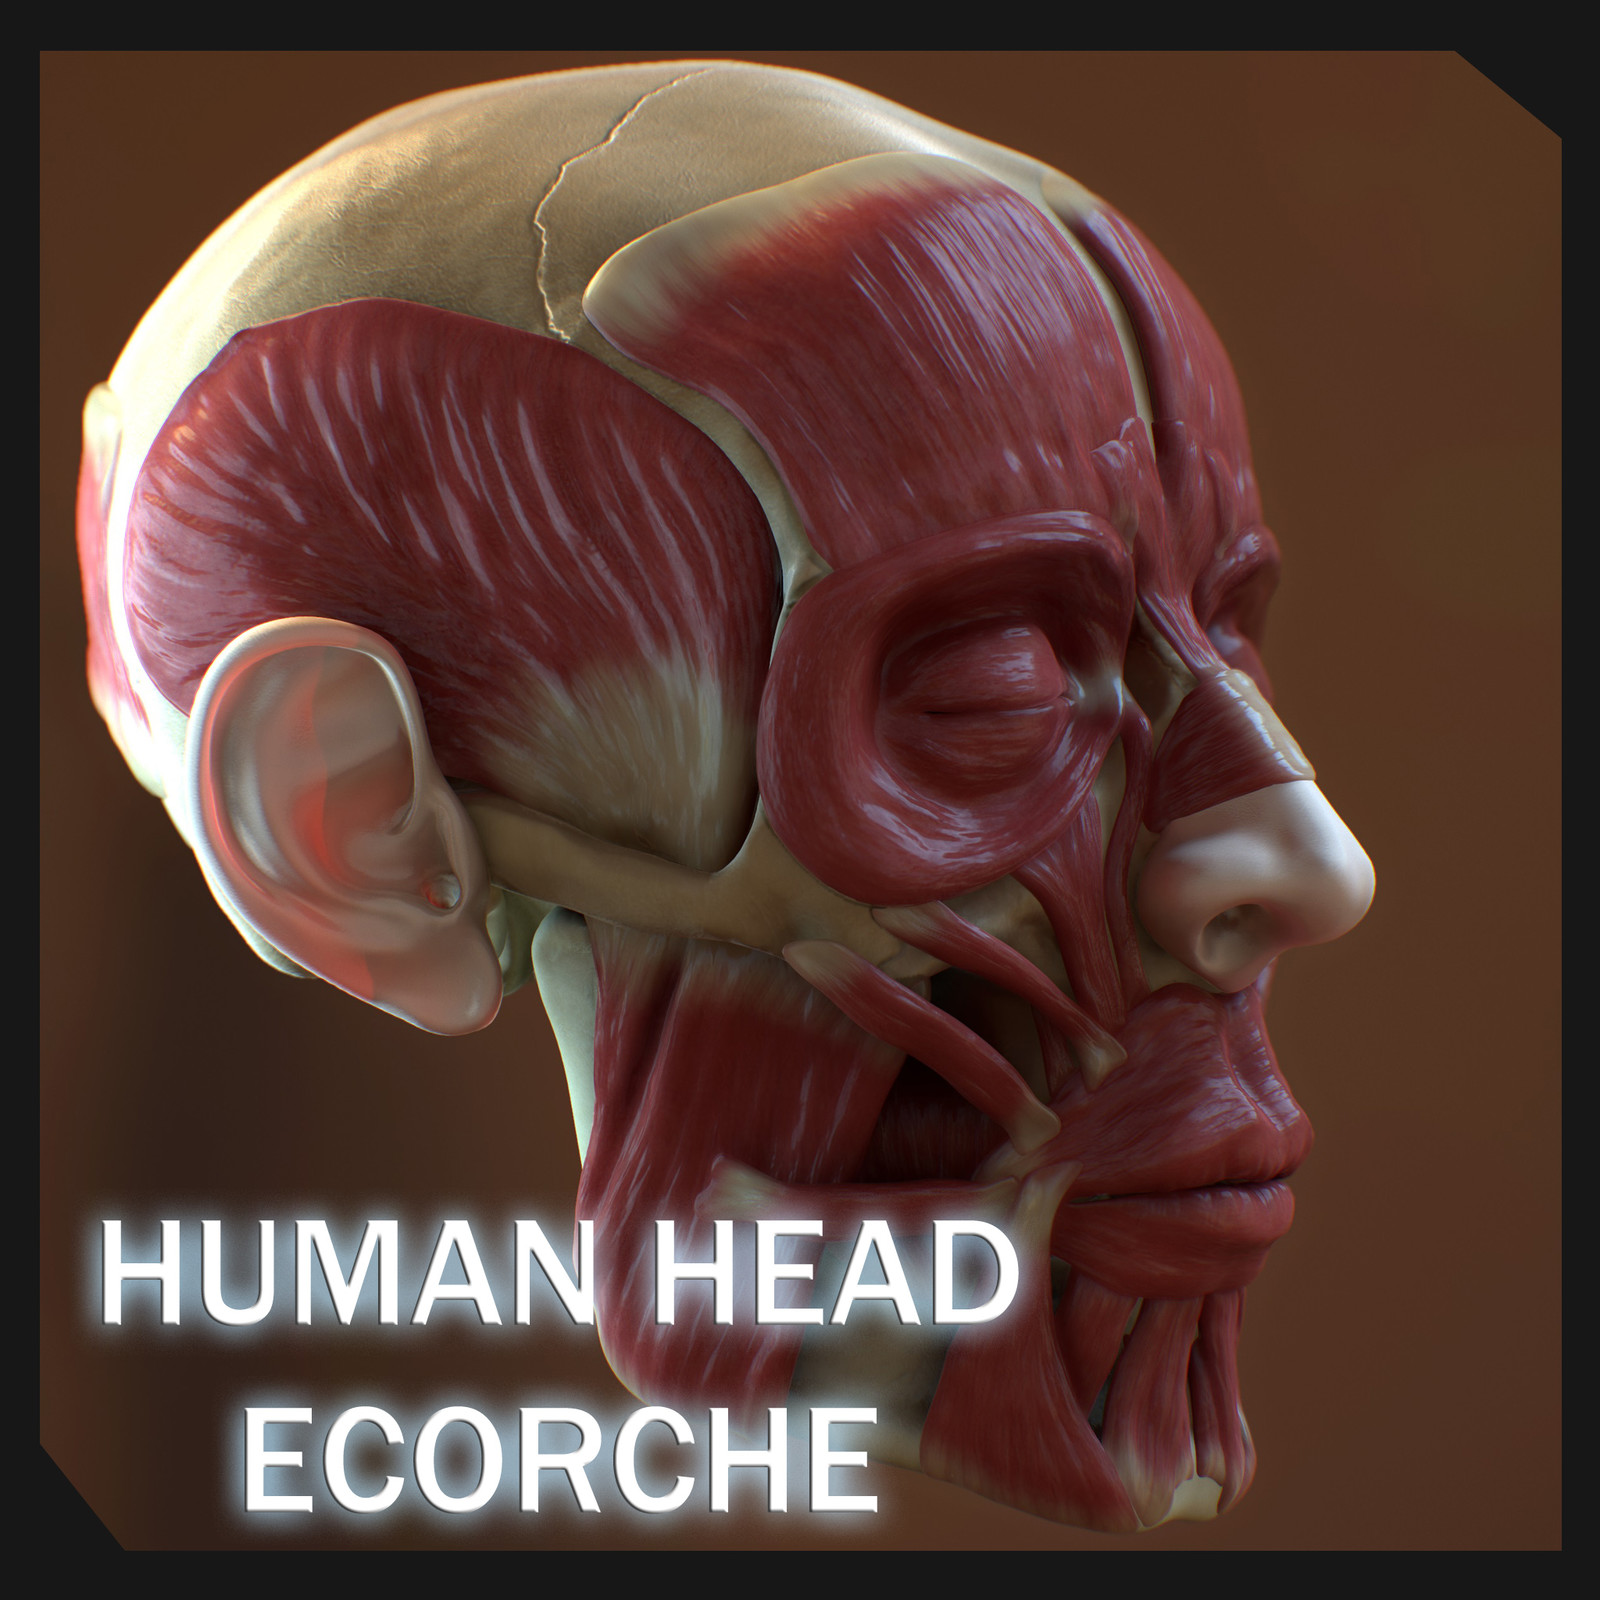 Human Head Ecorche Final Textured Version